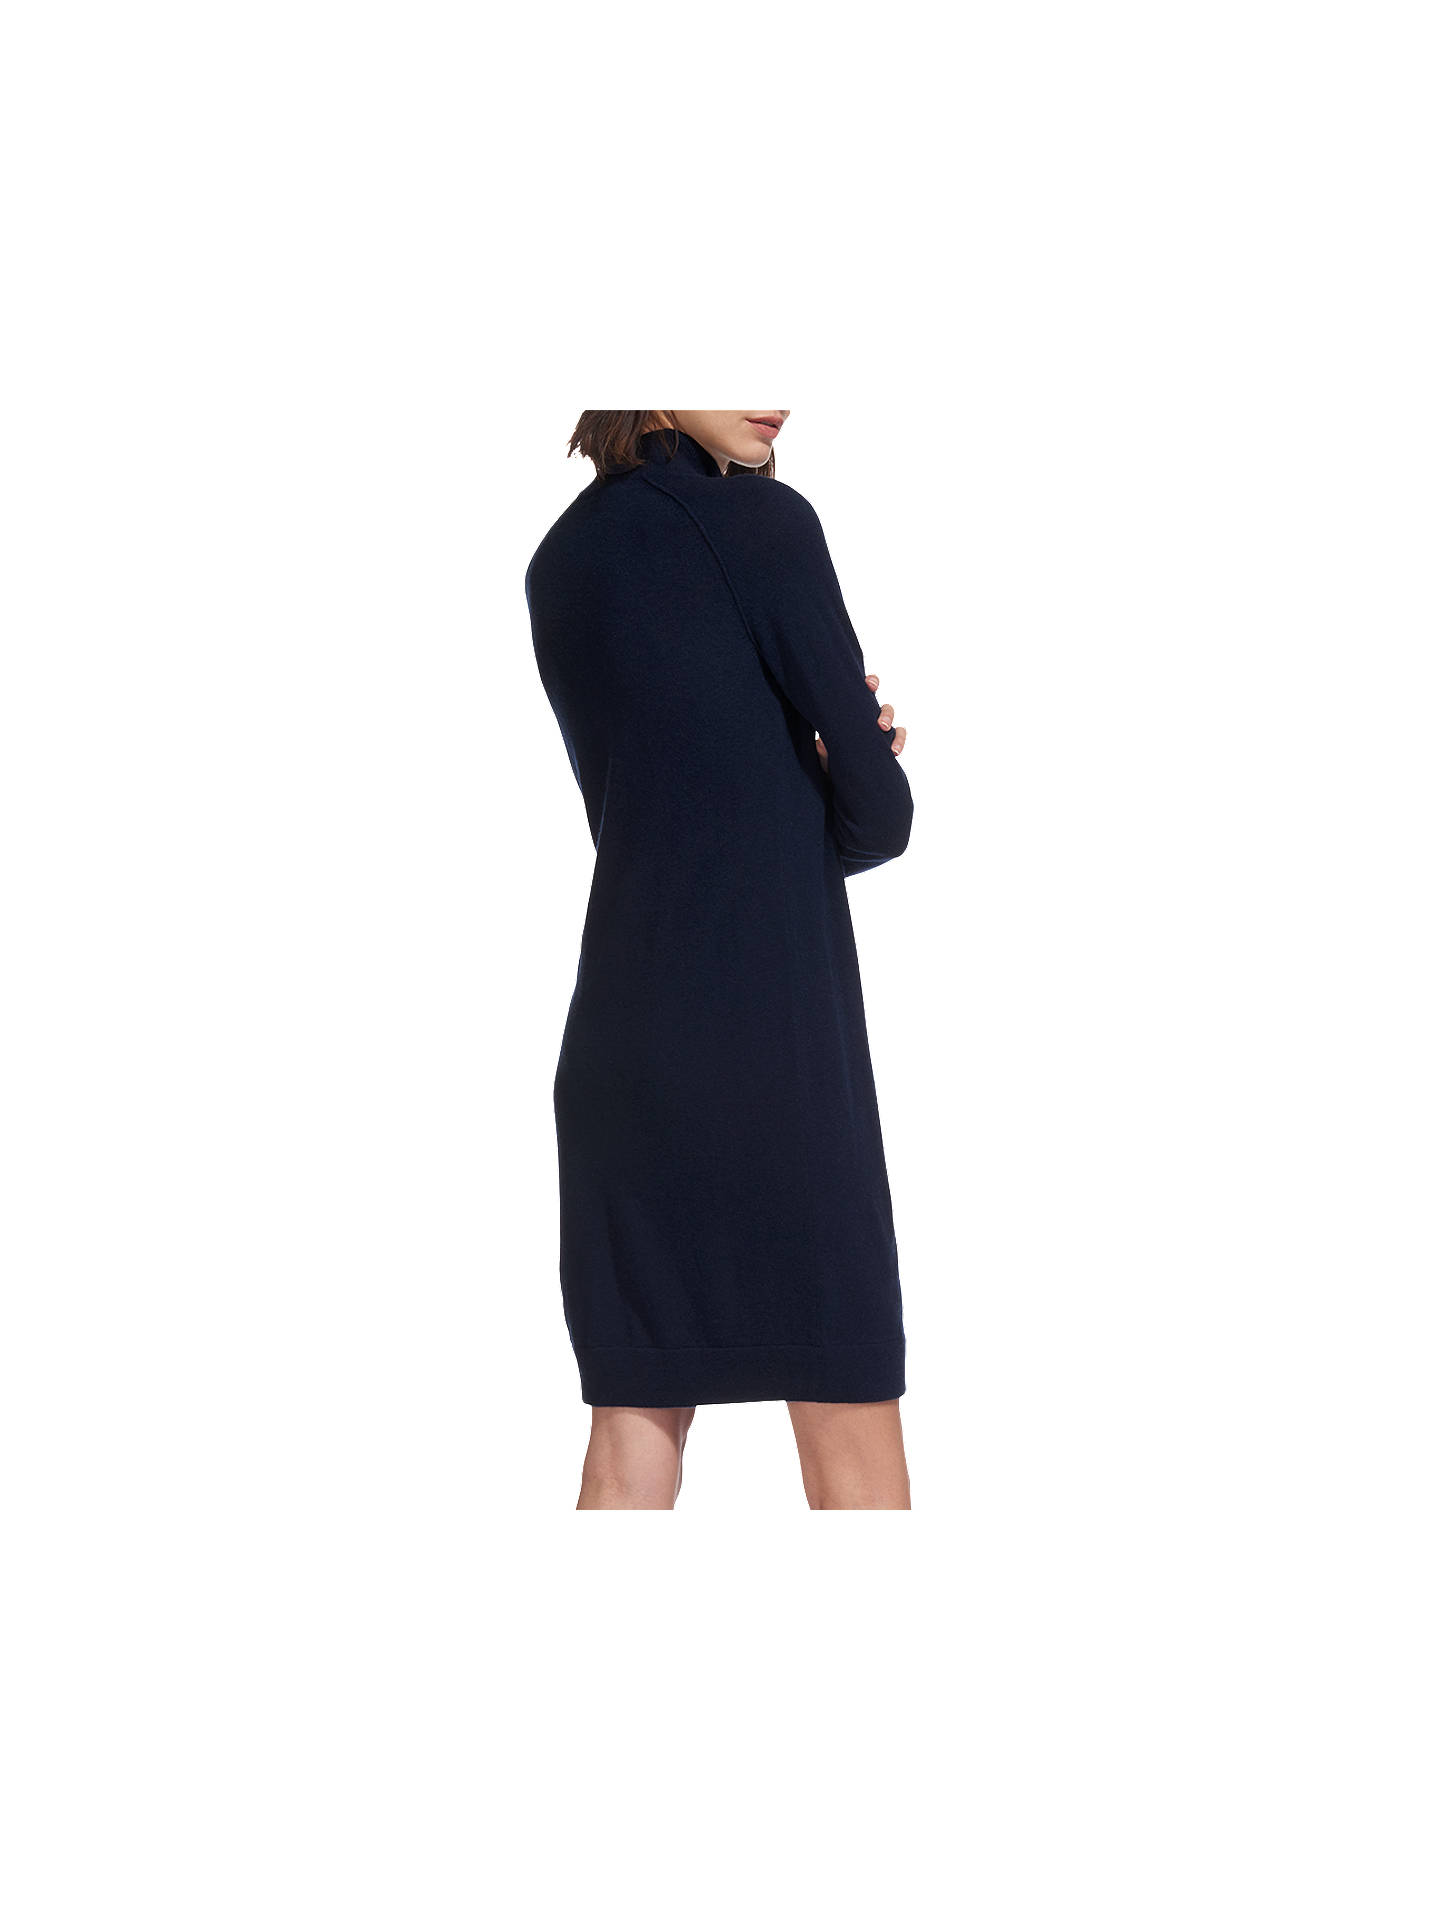 BuyWhistles Zip Front Funnel Neck Dress, Navy, XS Online at johnlewis.com